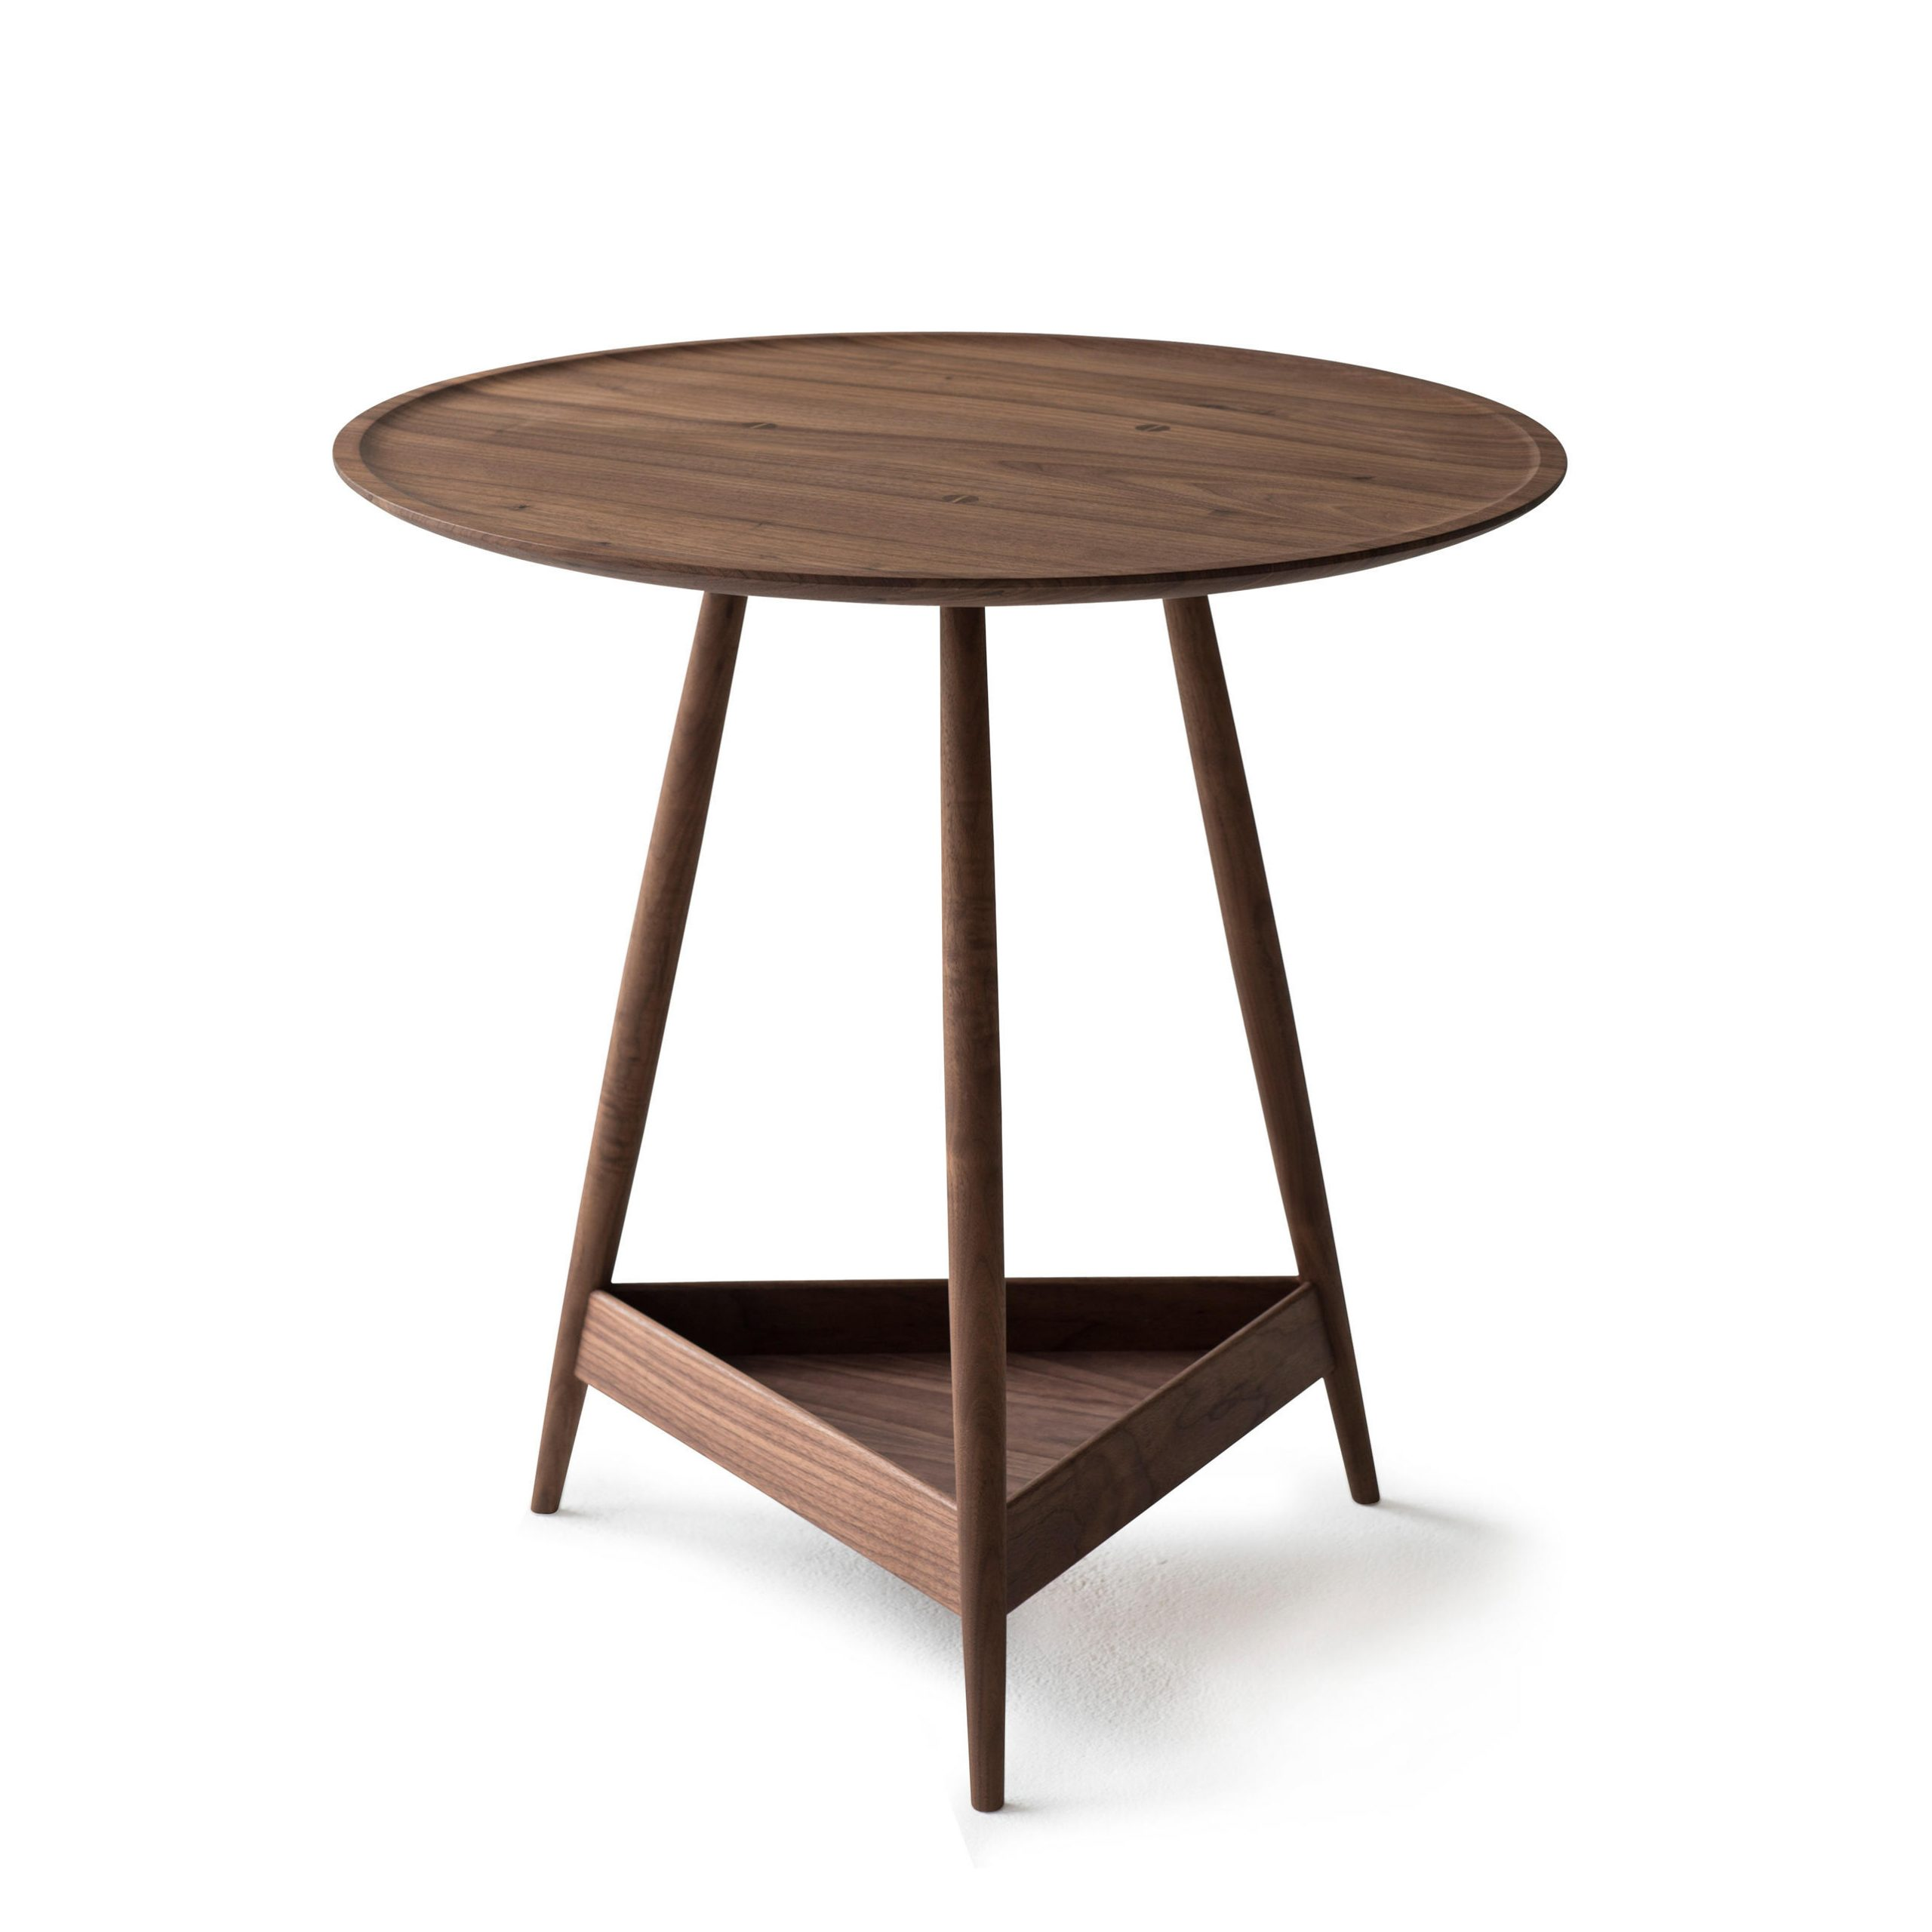 Clyde Lamp Table & Designer Furniture | Architonic Inside Most Popular Clyde Round Bar Tables (View 5 of 25)